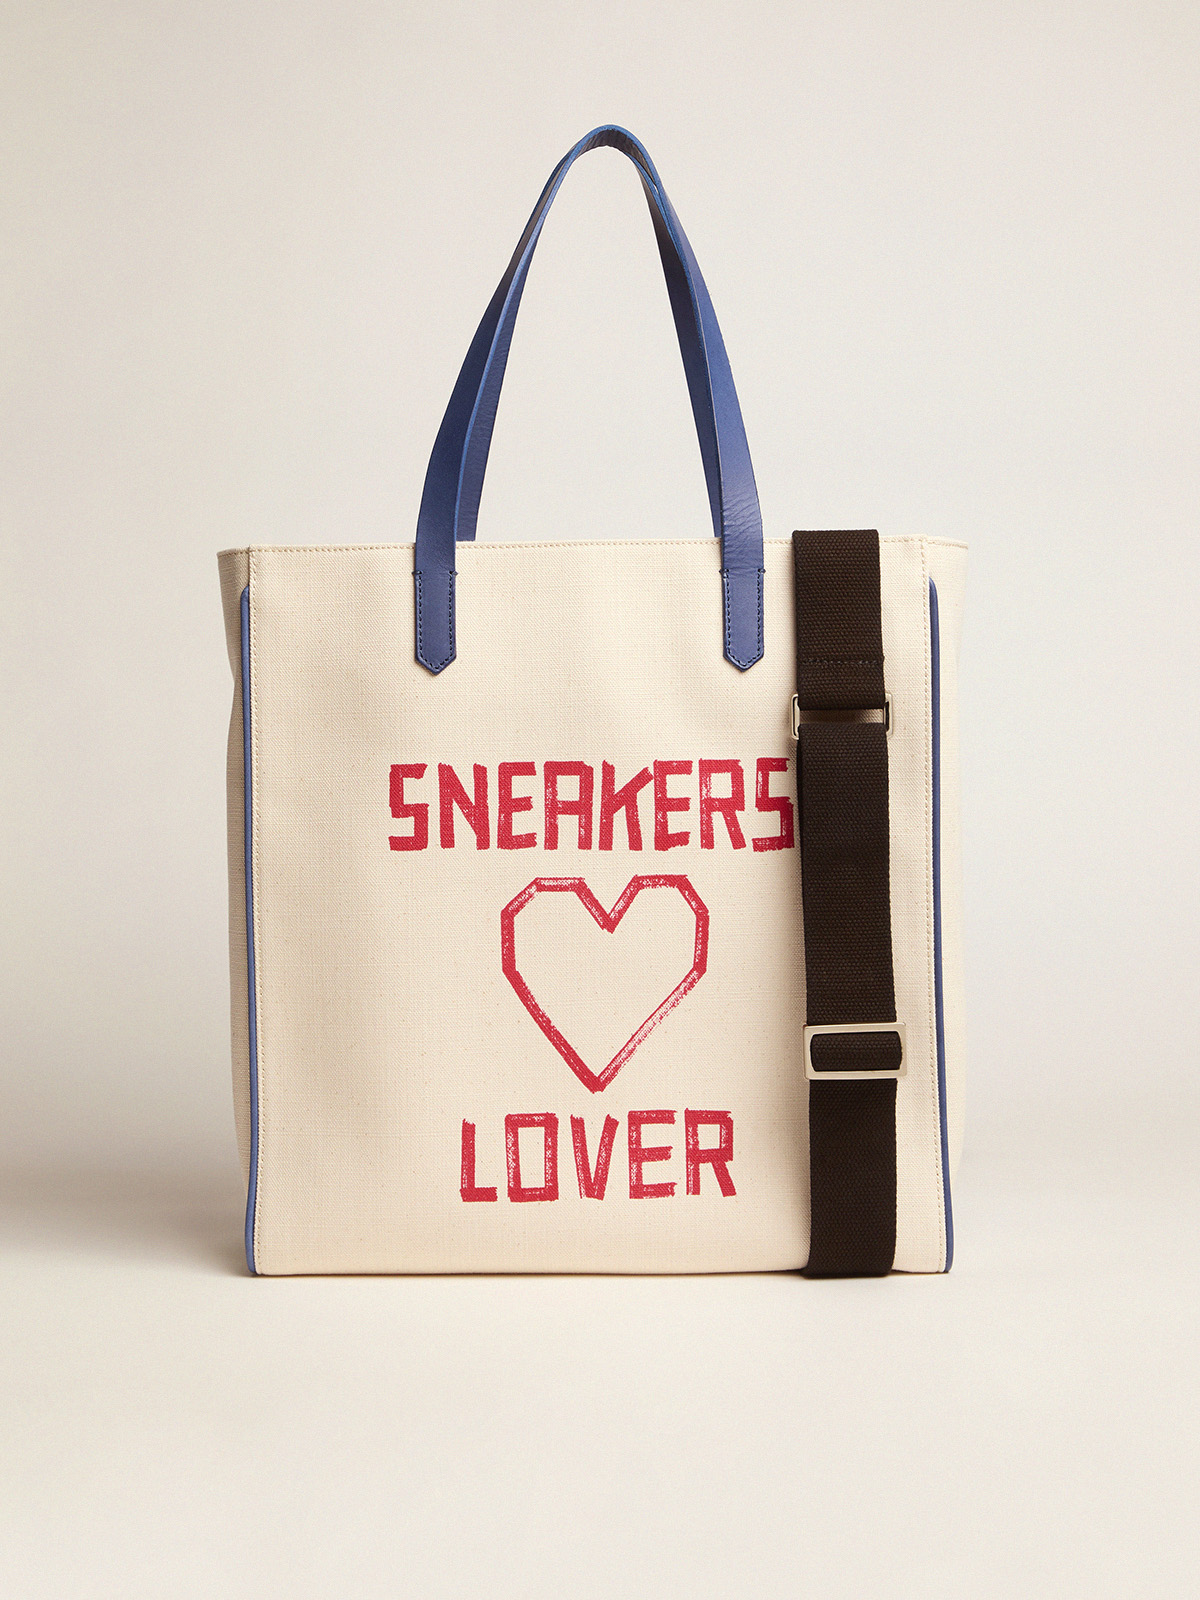 Golden Goose - California North-South bag with red Sneakers Lover print in